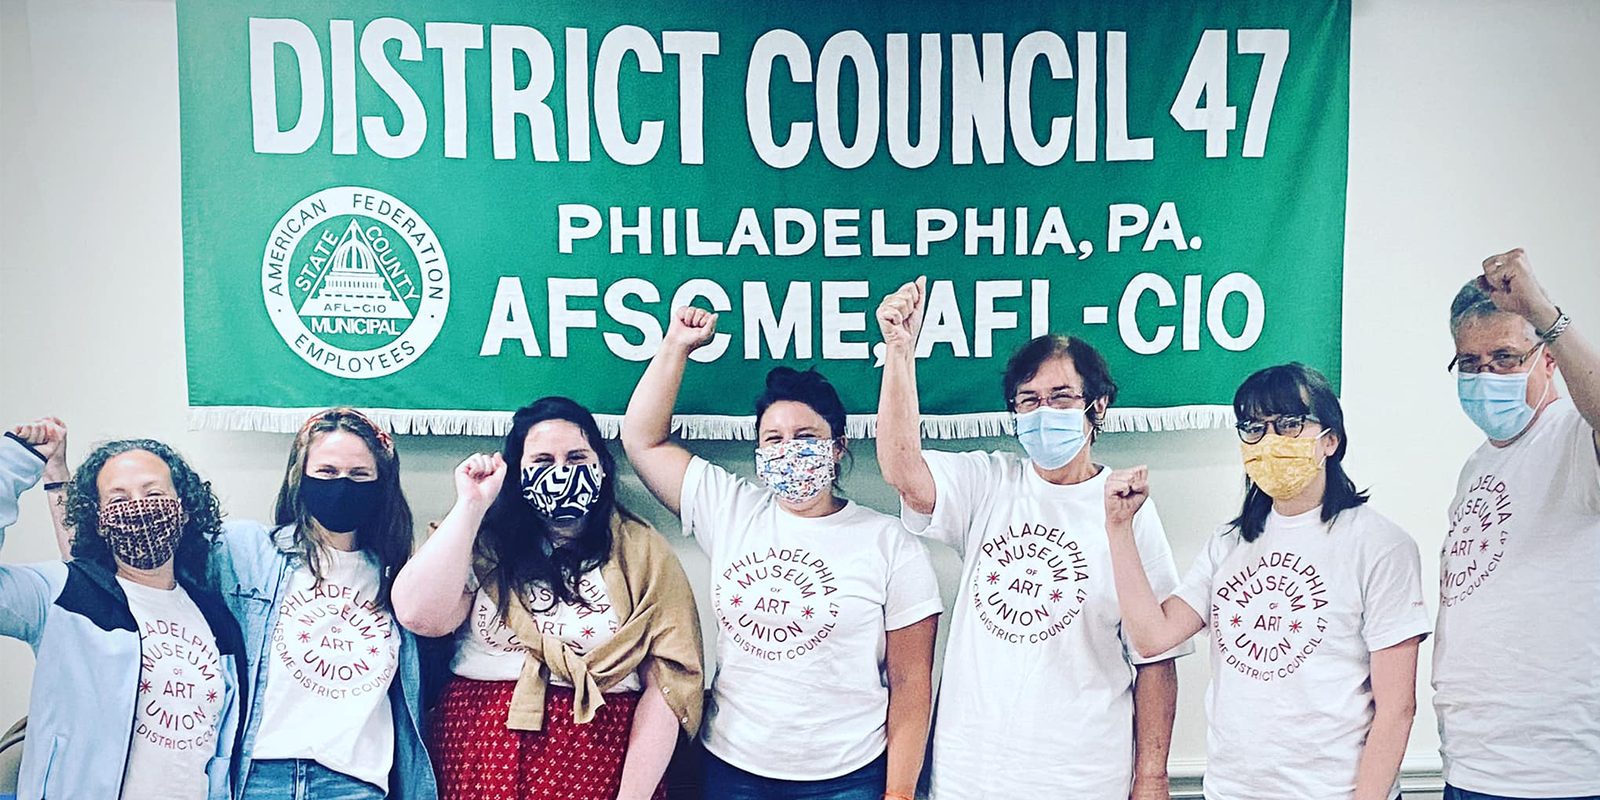 Philadelphia Museum of Art Union Organizing Committee